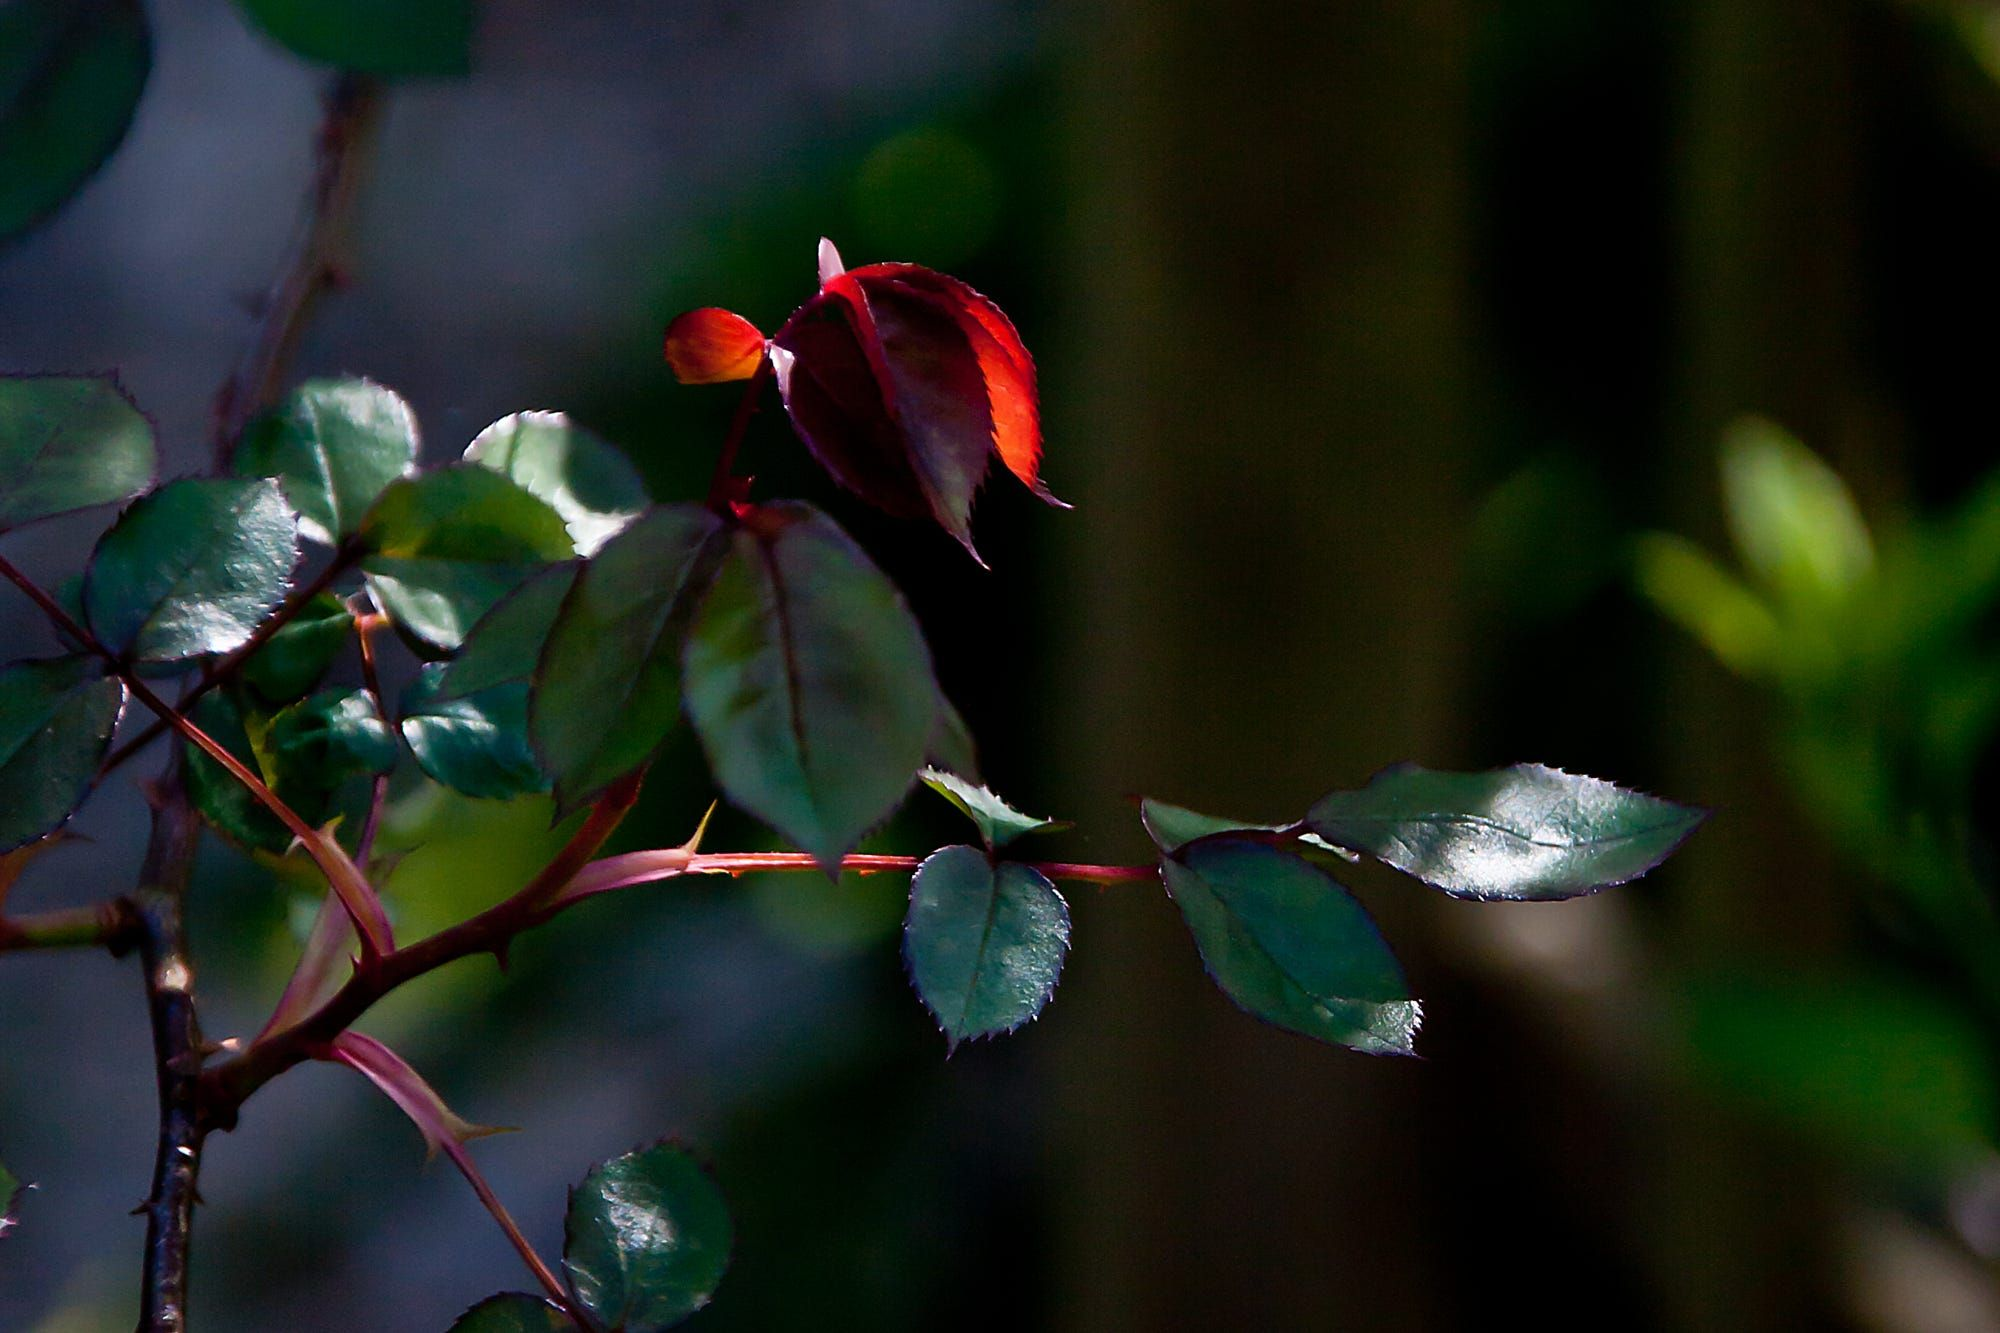 Number 100 - saw this rose bush in the sunbeam between clouds and loved the red leaf being emphasised.  Caught - as in caught in the light and caught by the thorns - this one is a real nuisance and is always snagging me, but I love the roses it produces  Just realised this is number 100!